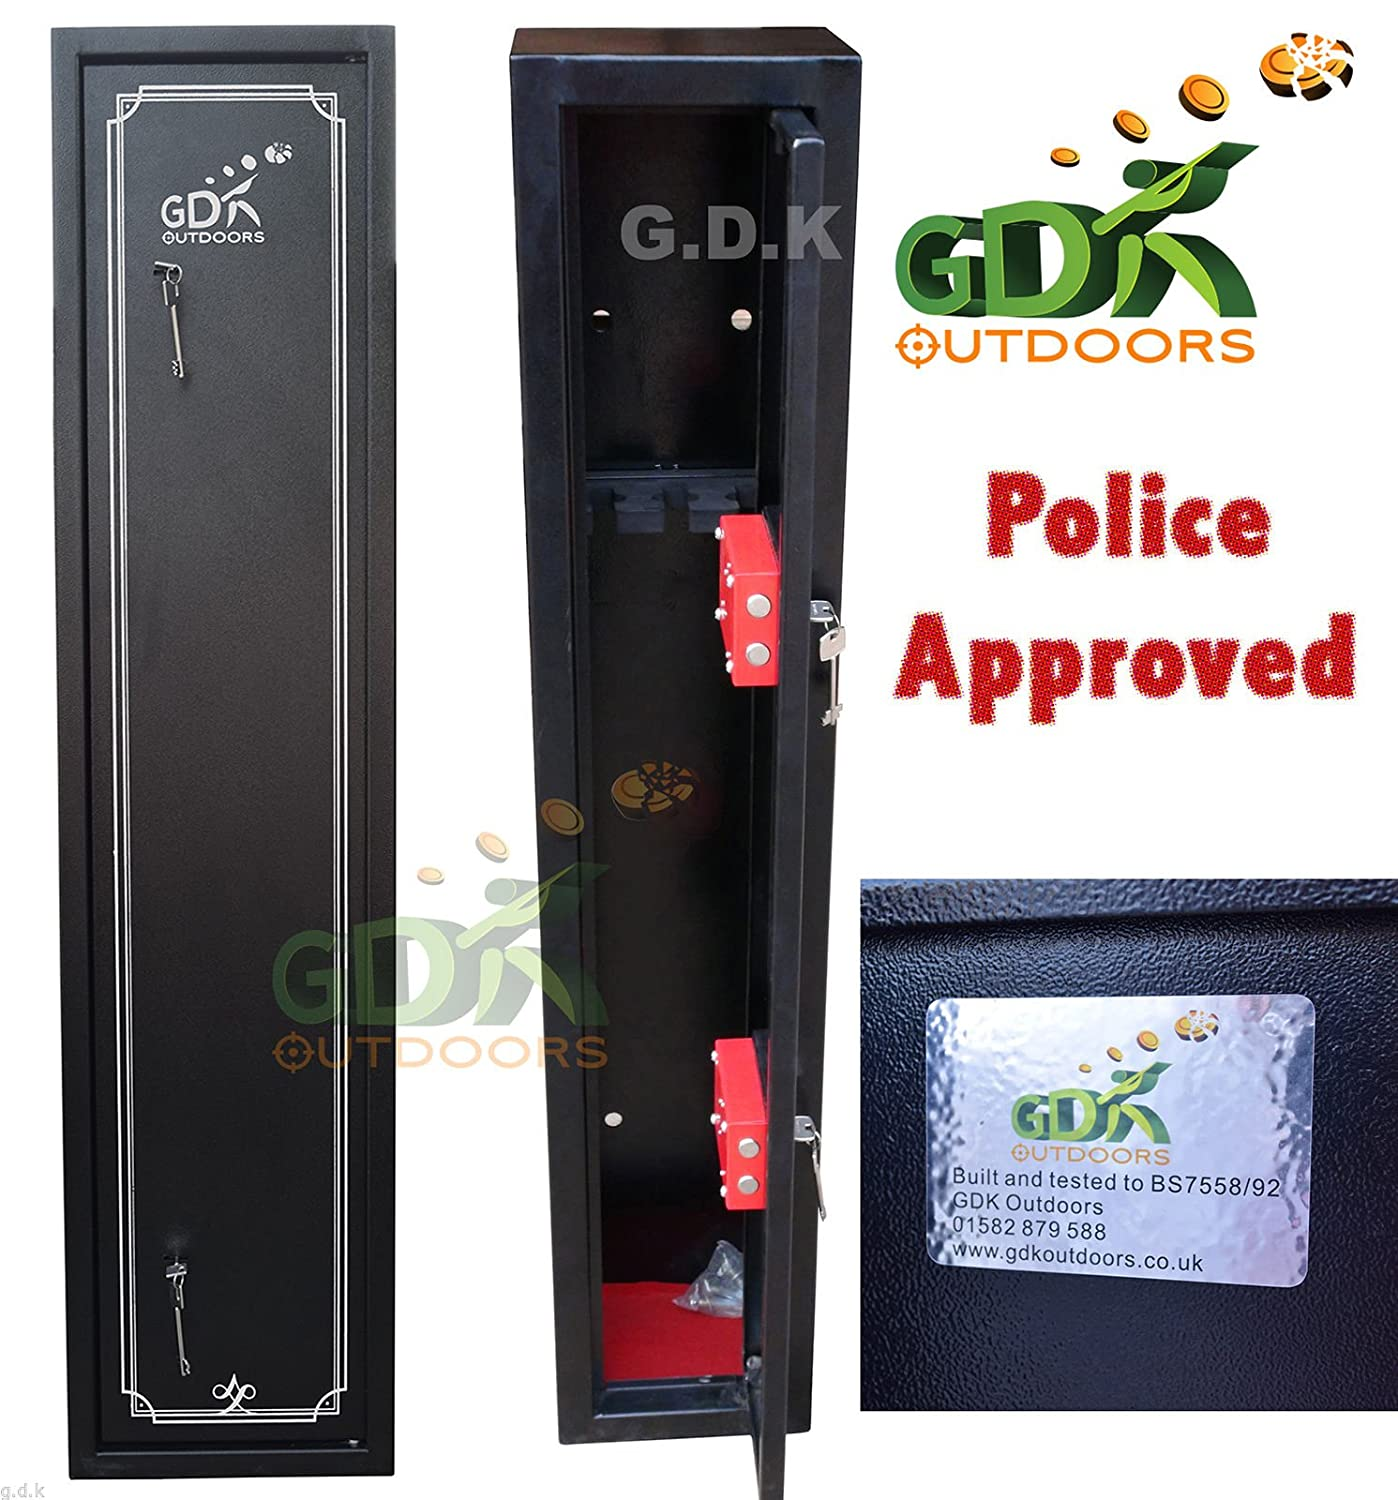 gdk 3 gun cabinet shotgun rifle safe police approved bs755892 amazoncouk sports u0026 outdoors